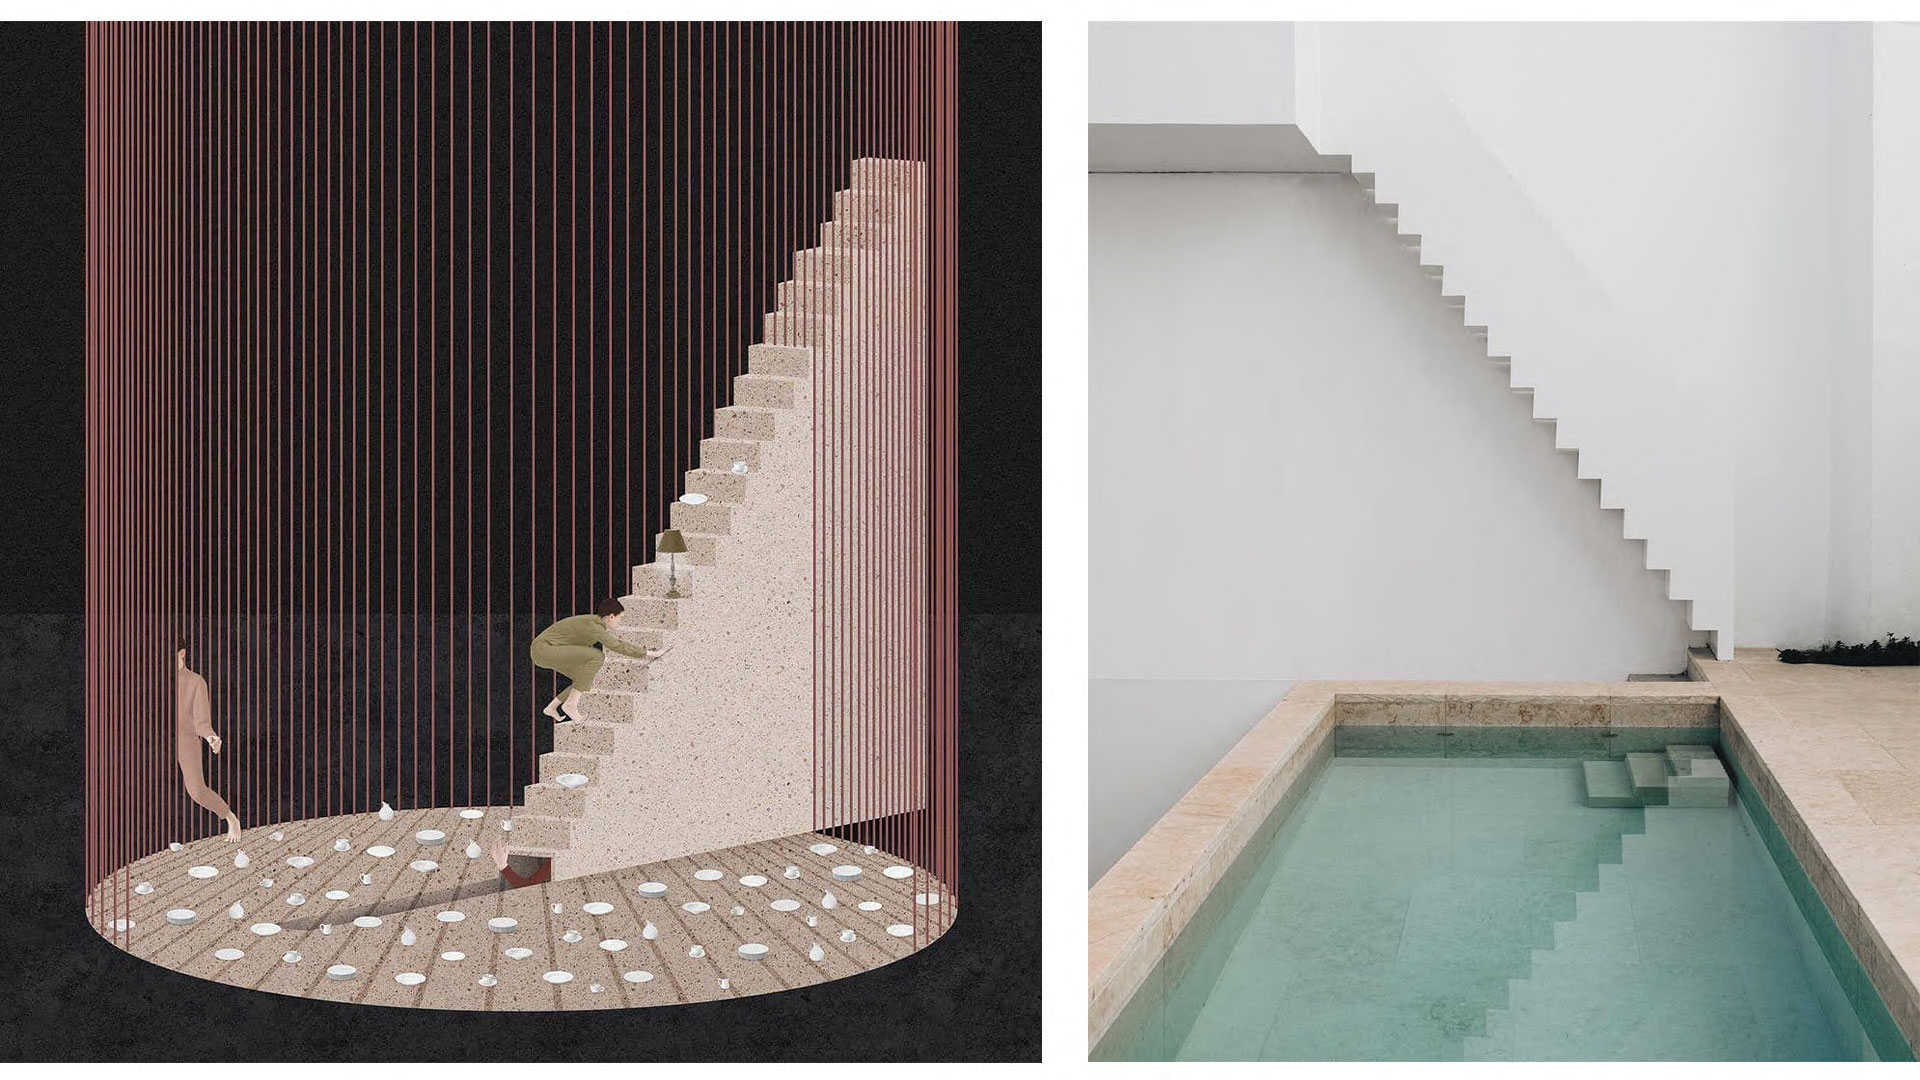 Two images depicting tall and minimal stair design, the one on the left is an illustration, the one on the right is a photograph